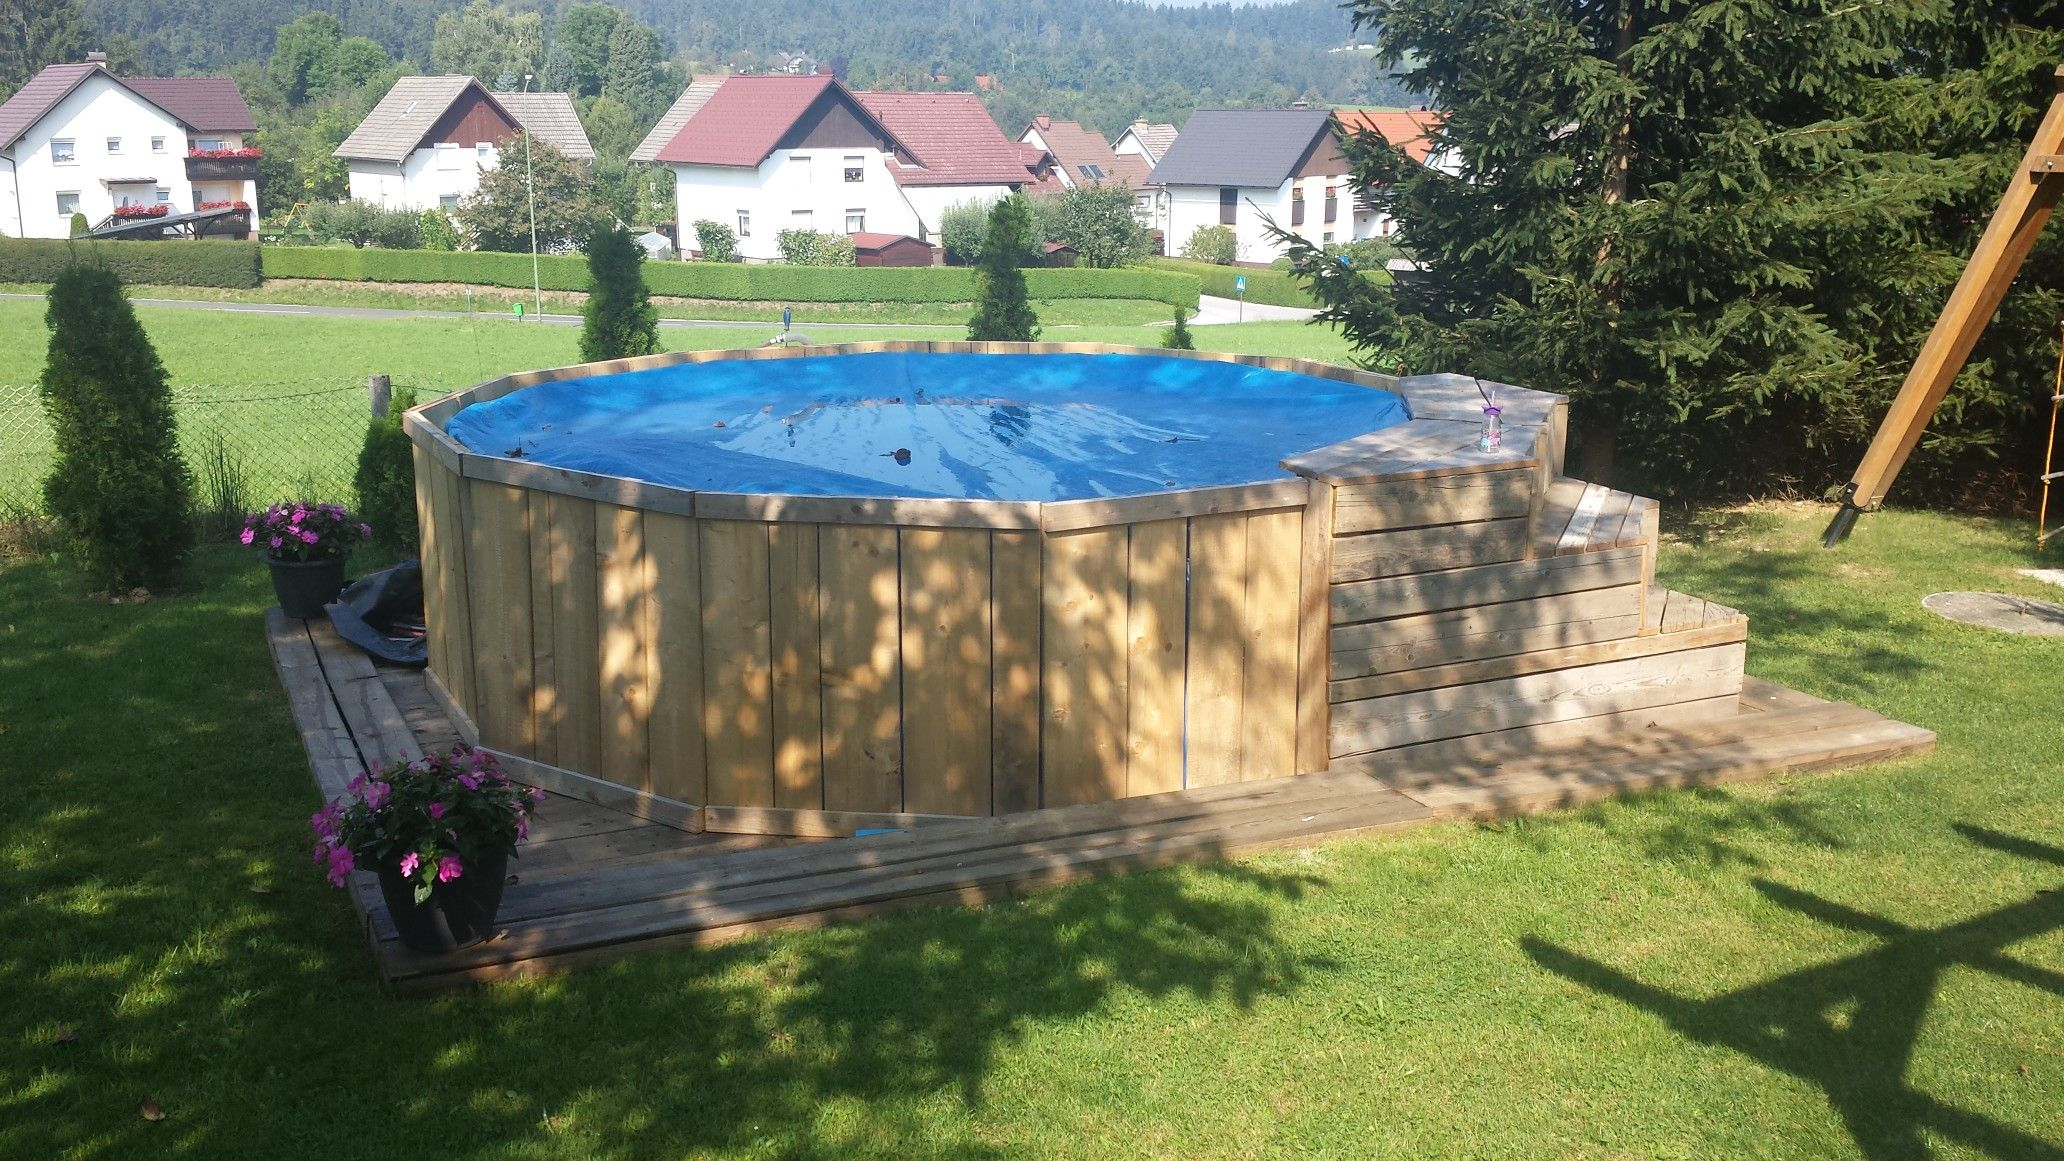 Diy Wooden Pool Frame And Stairs Wooden Pool Pool In Ground Pools